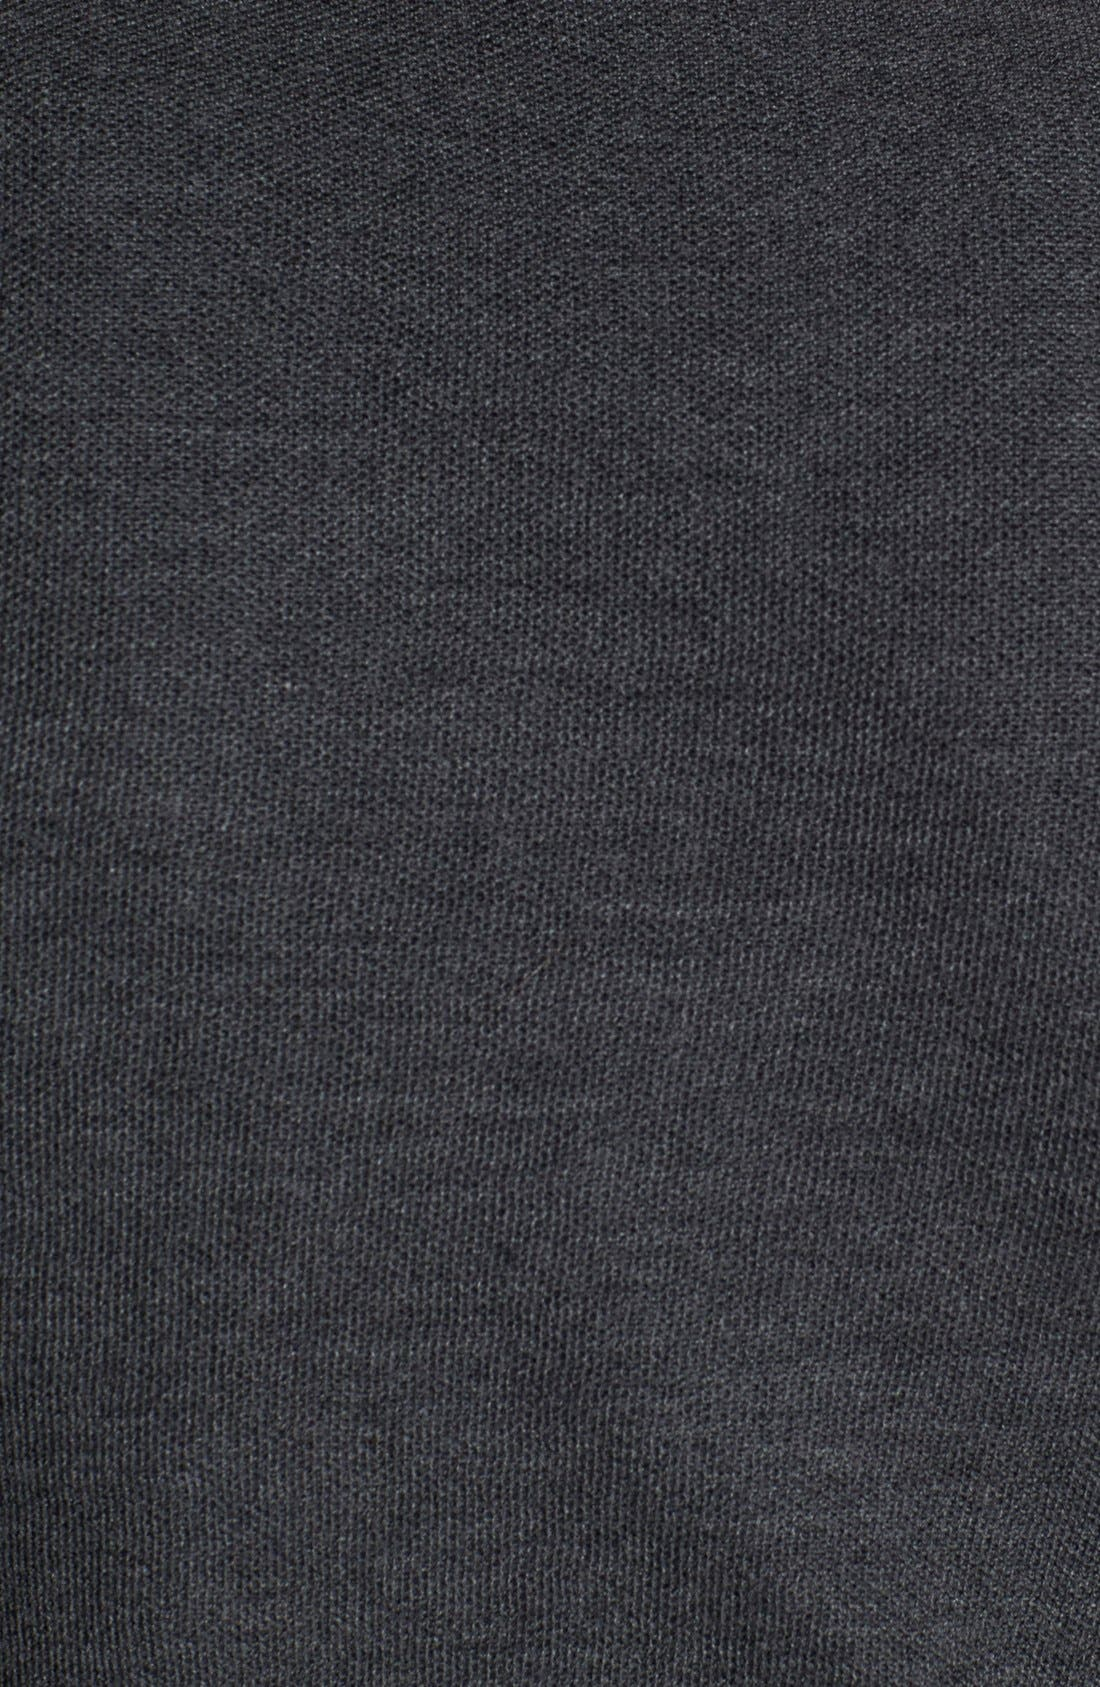 Alternate Image 3  - Canali Wool V-Neck Sweater